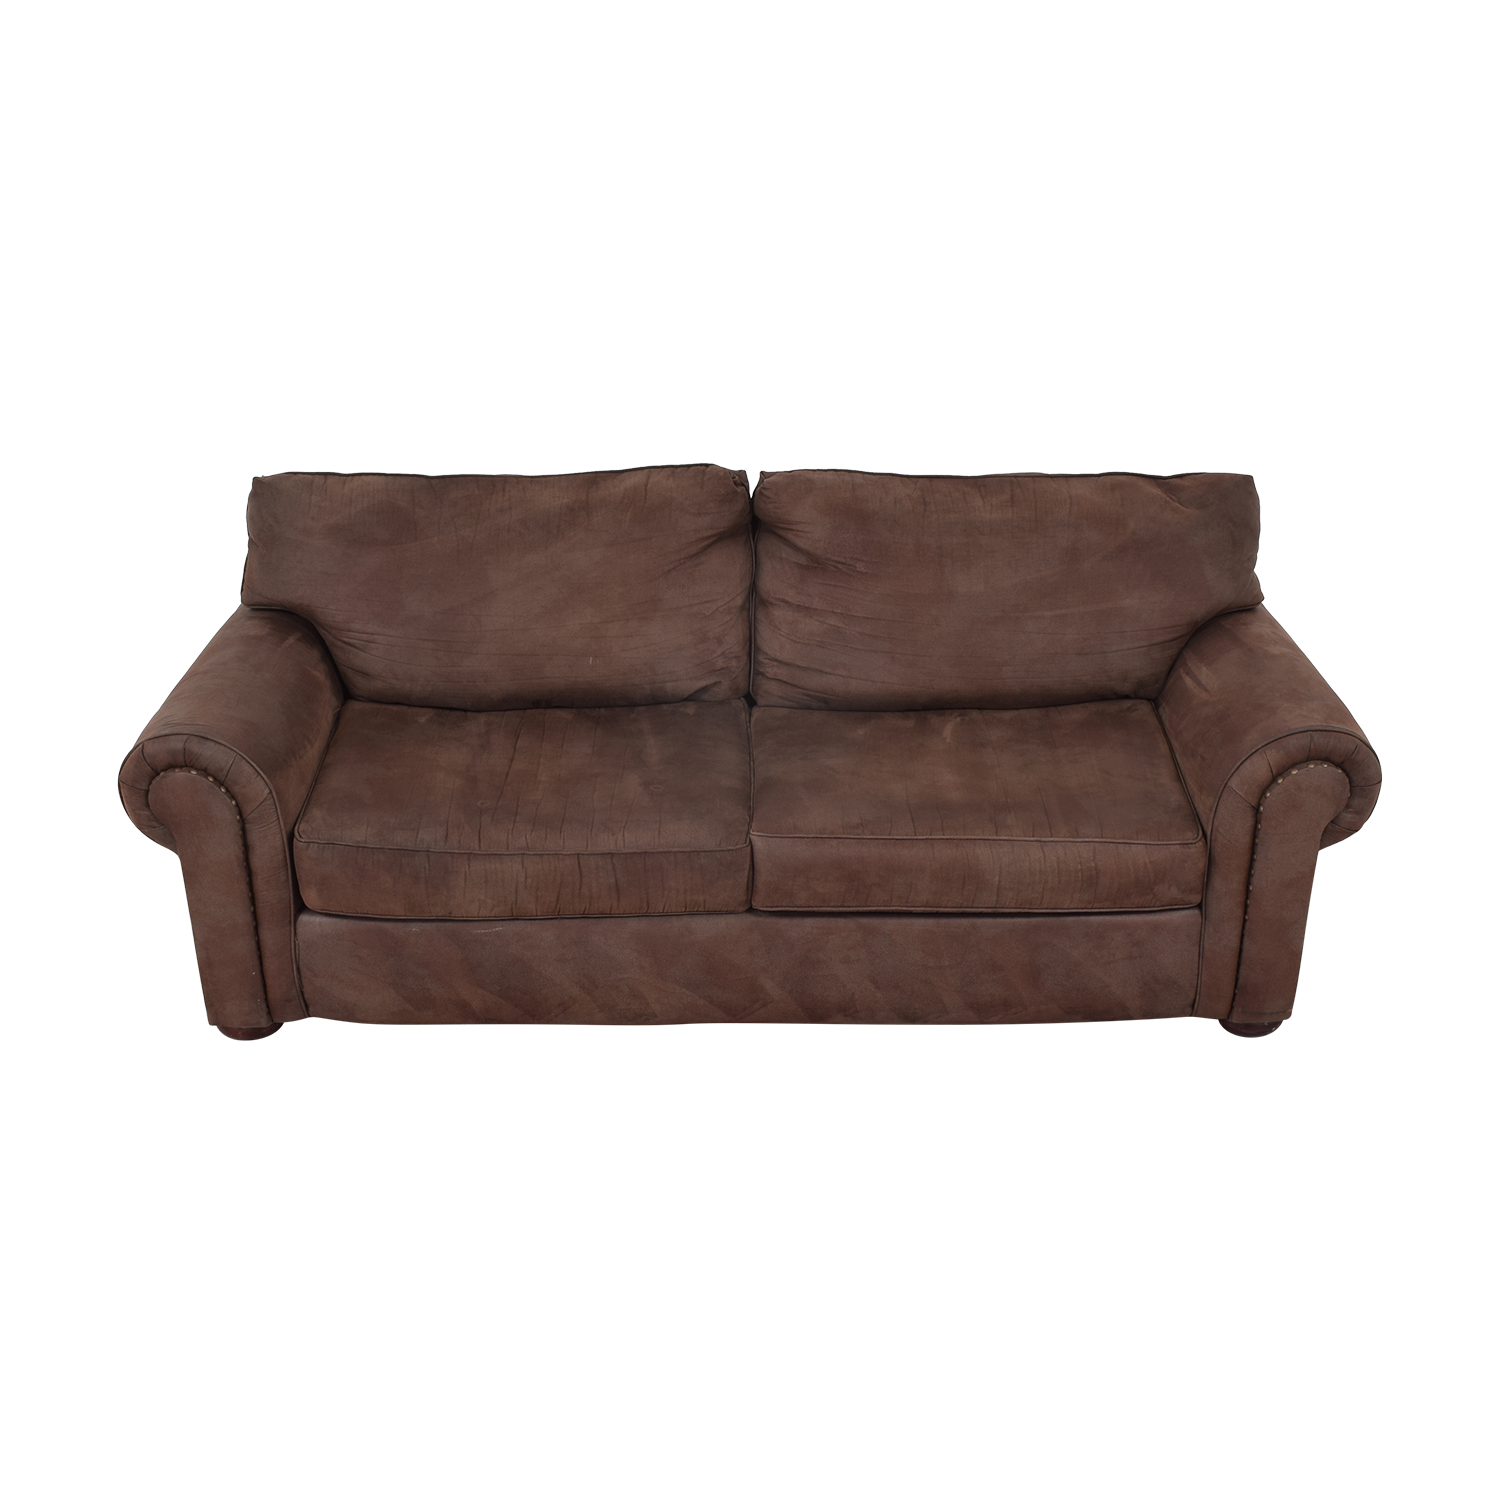 Klaussner Klaussner Two-Cushion Sofa dimensions